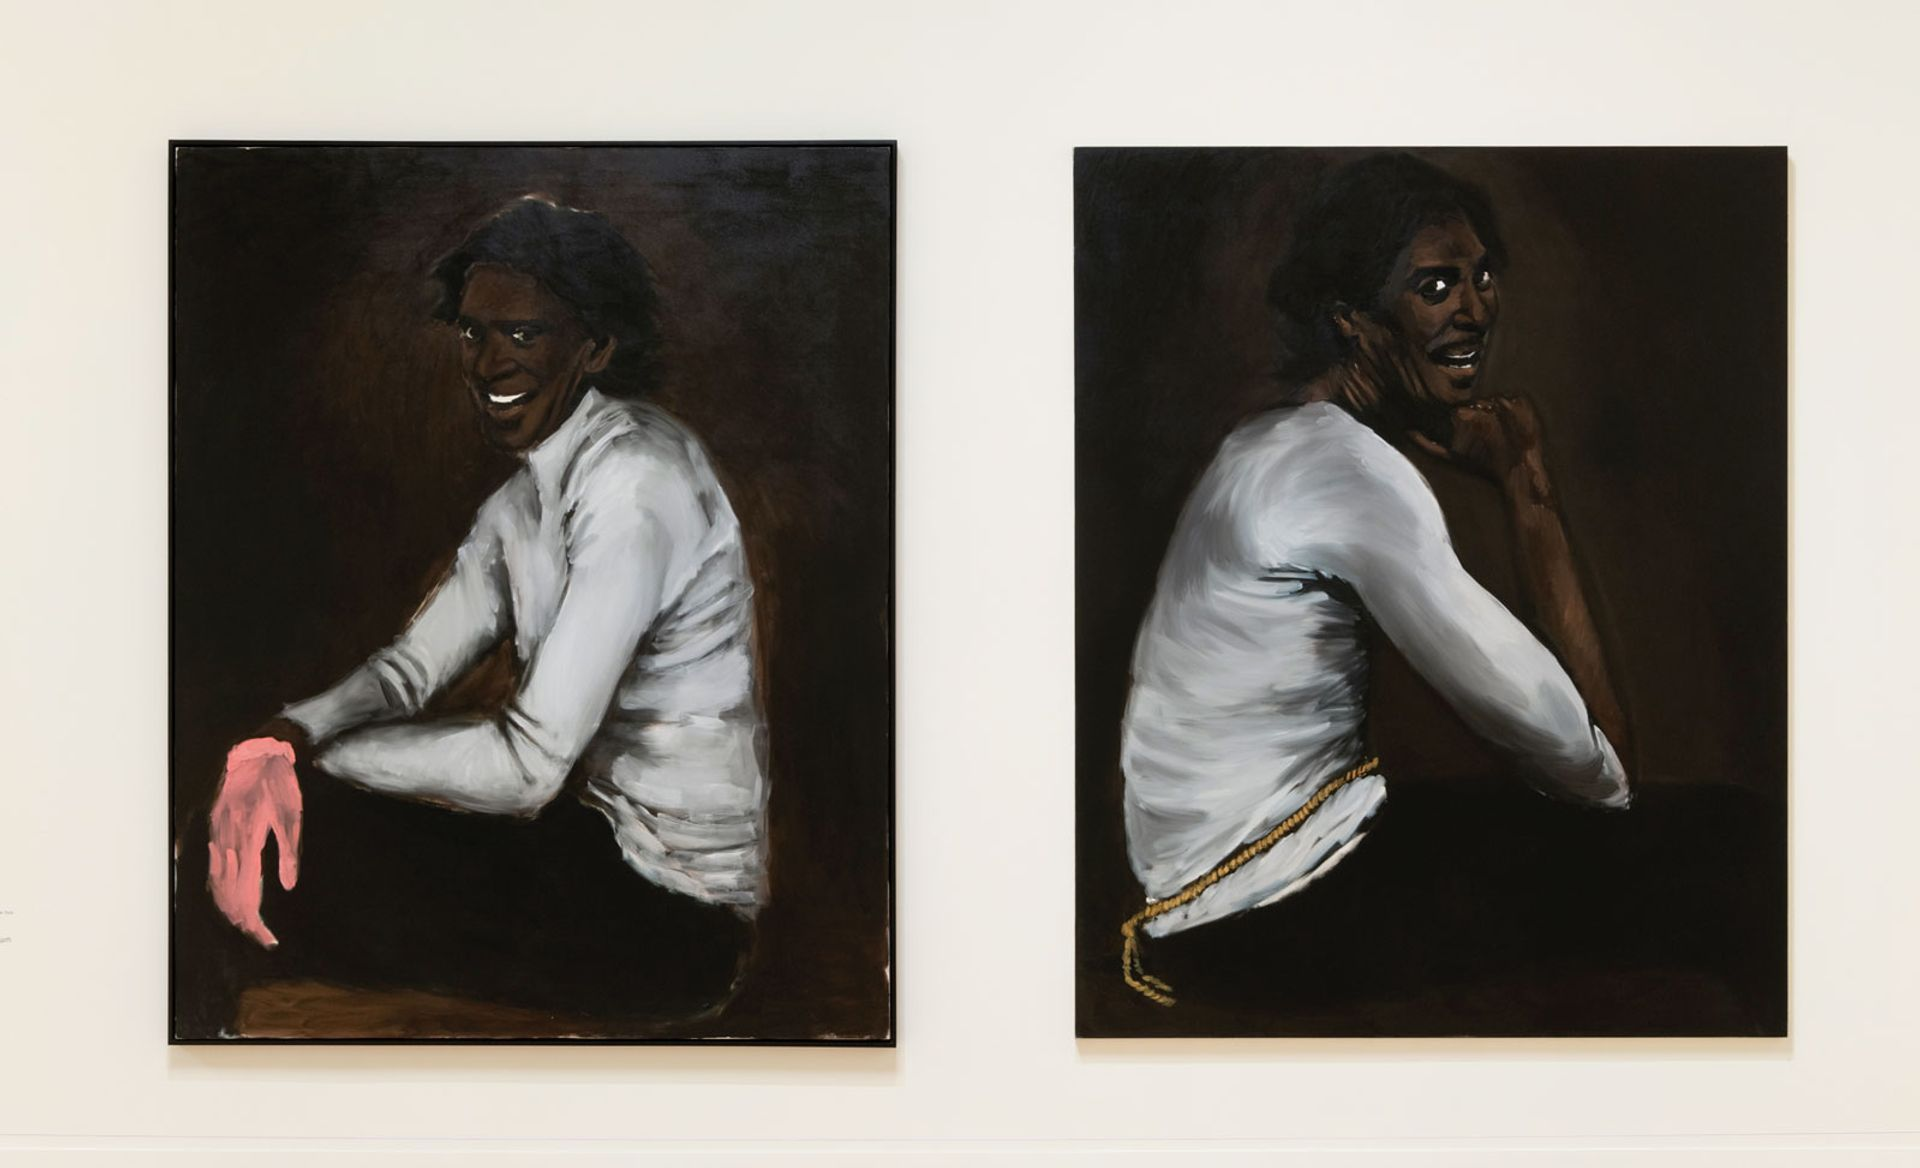 Wrist Action (2010) and Bound Over To Keep The Faith (2012) by Lynette Yiadom-Boakye at Tate Britain Photo: Tate (Seraphina Neville)